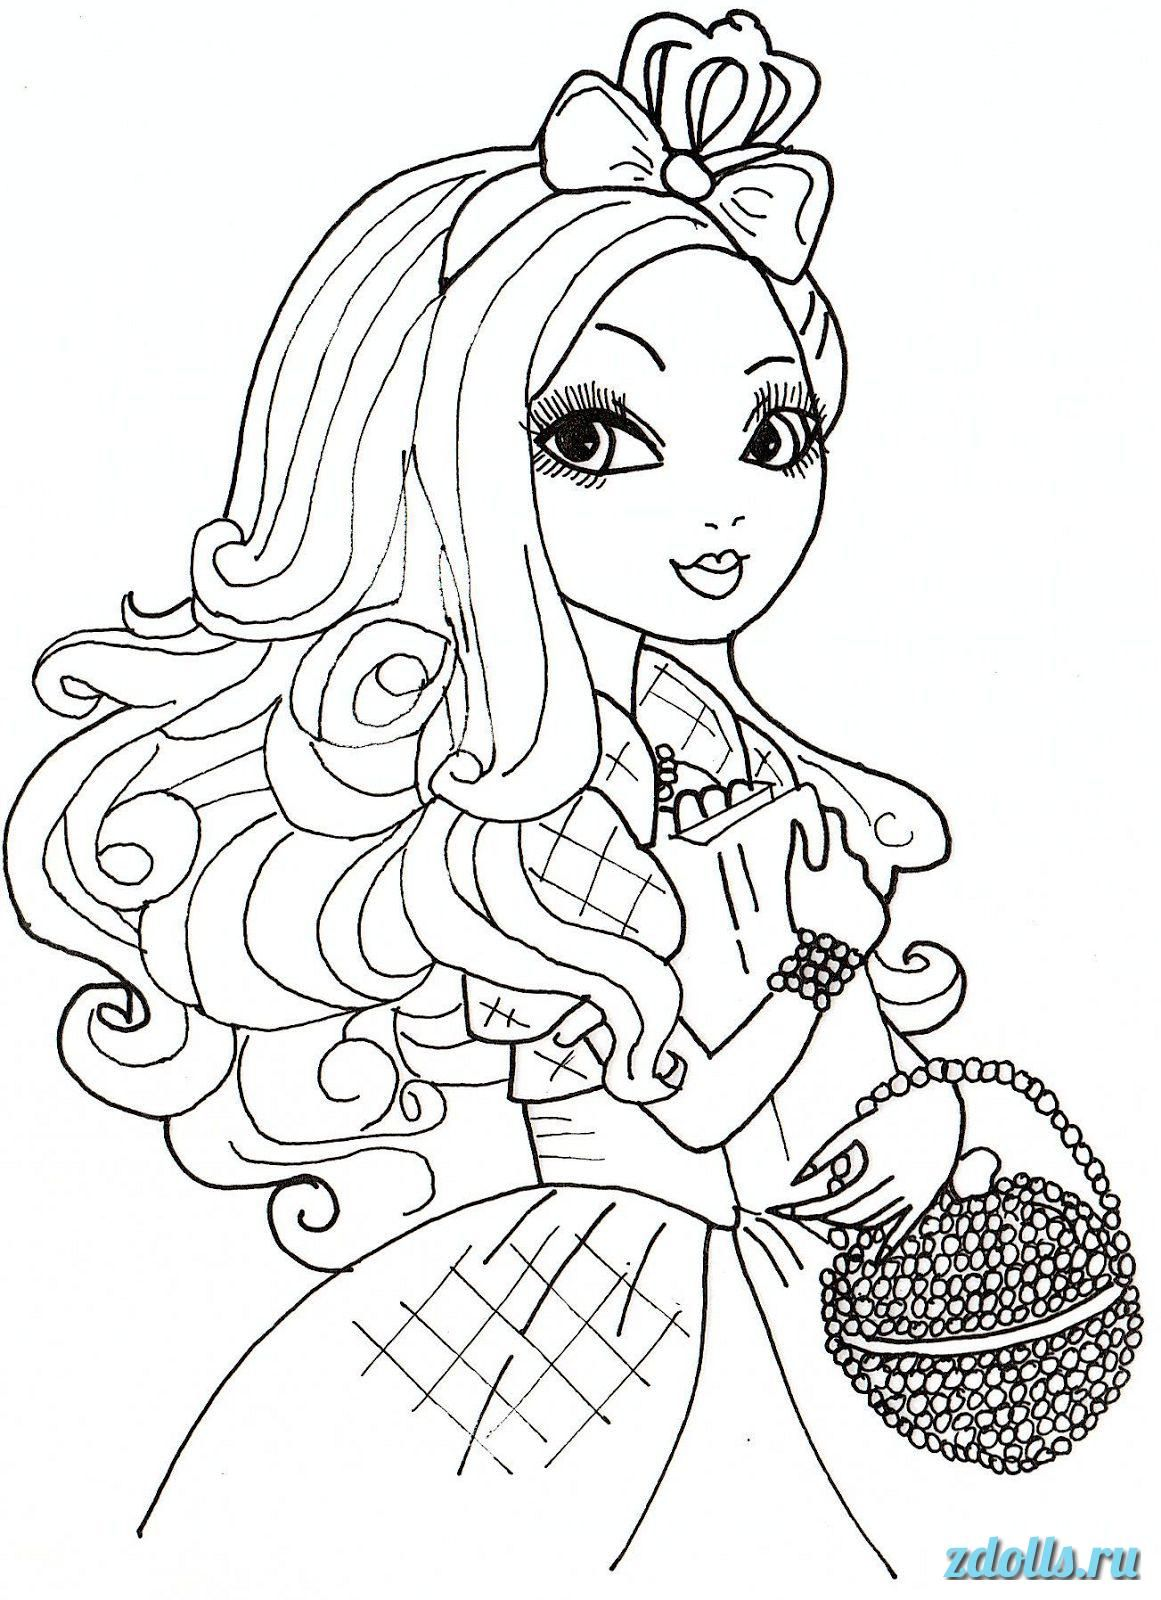 Print ever after high coloring pages free ever after high coloring sheets coloring books